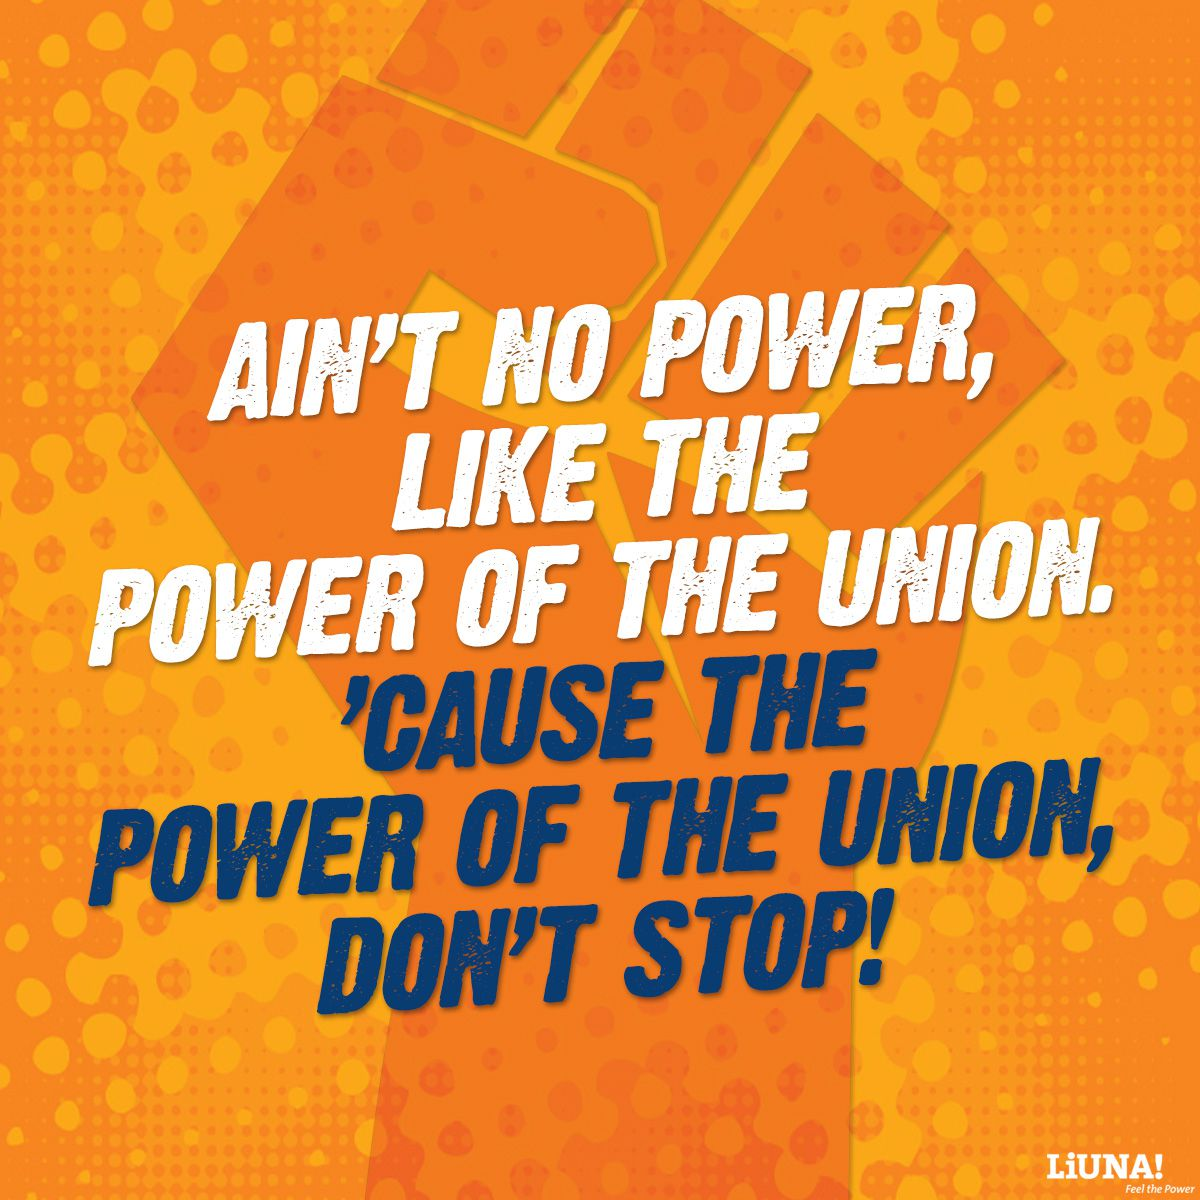 Power of the Union Dont Stop.jpg